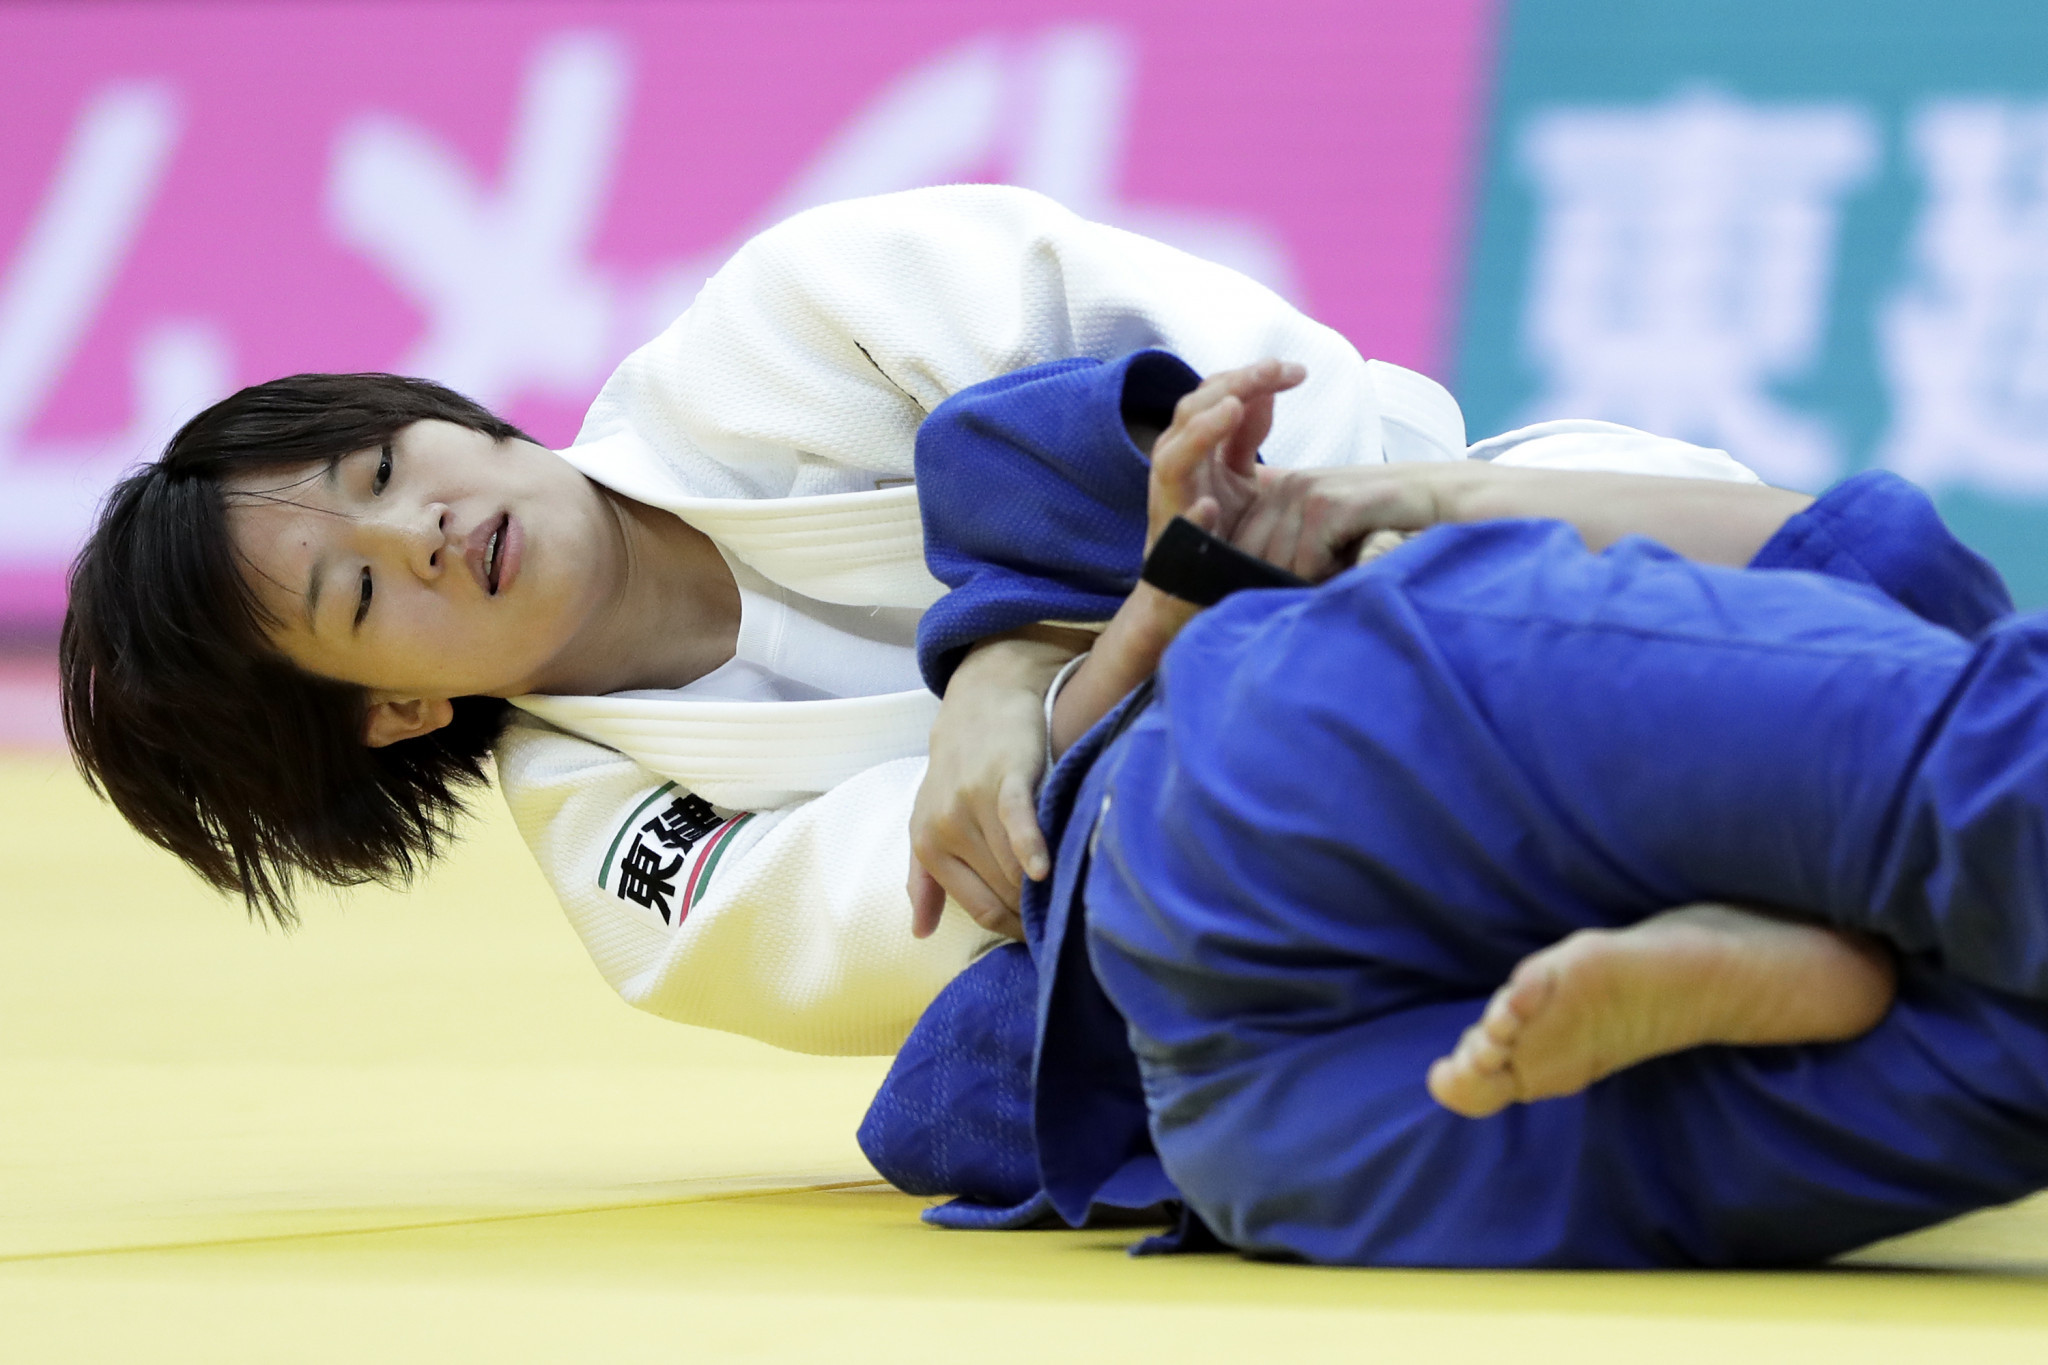 Japan's Chizuru Arai dominated her event as the hosts continued their gold medal haul ©Getty Images